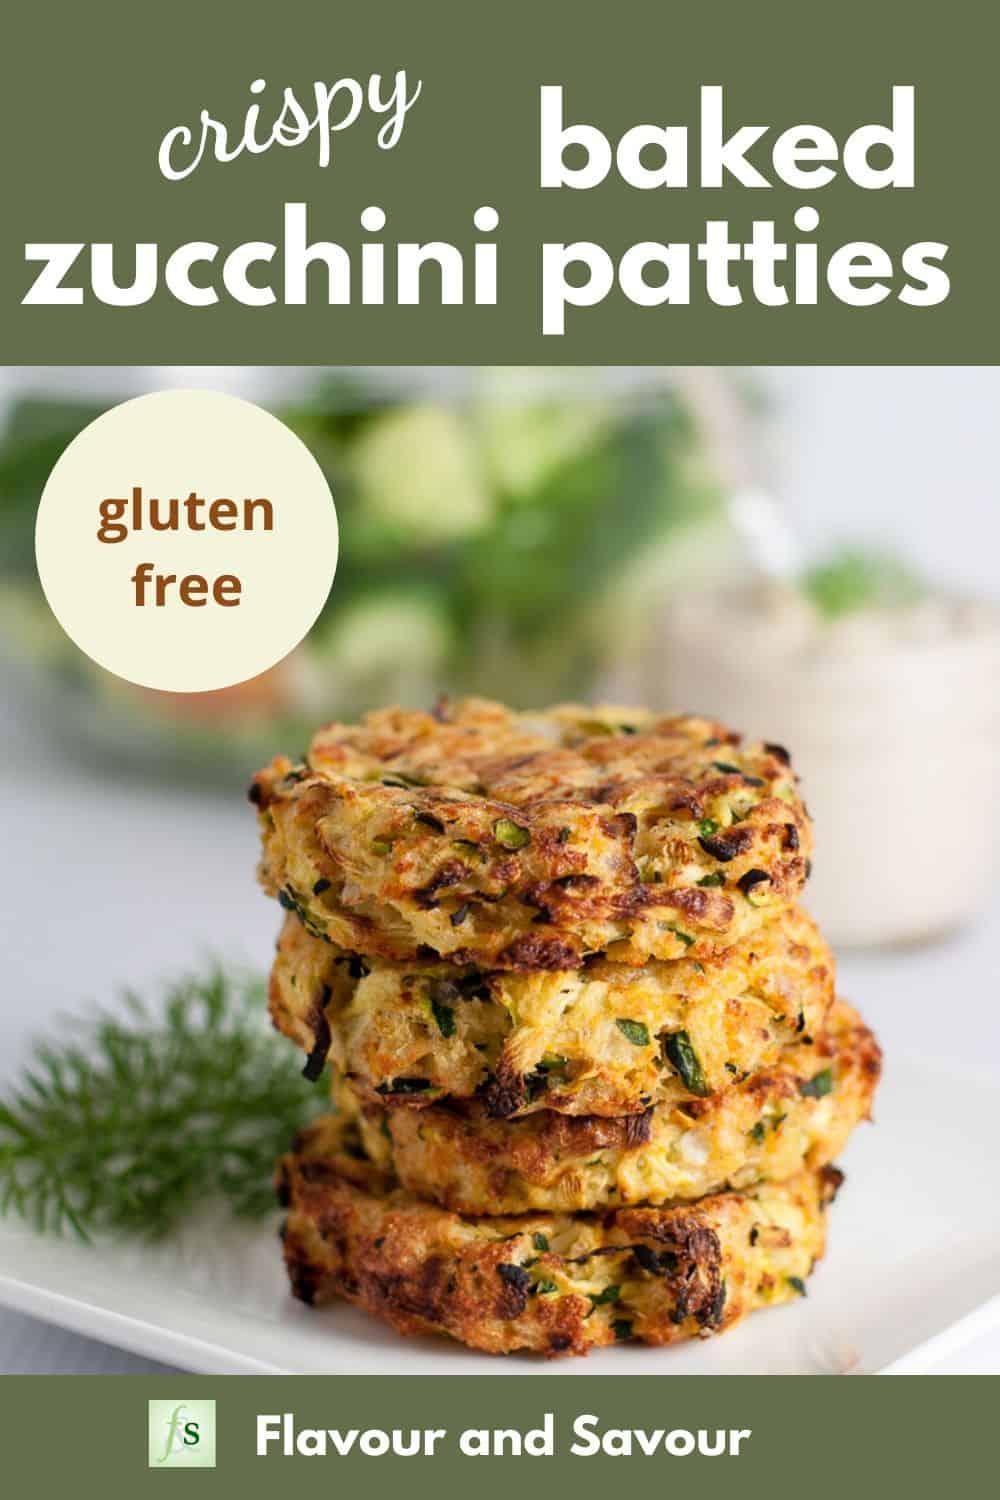 Pin for Crispy Baked Zucchini Patties 04/20